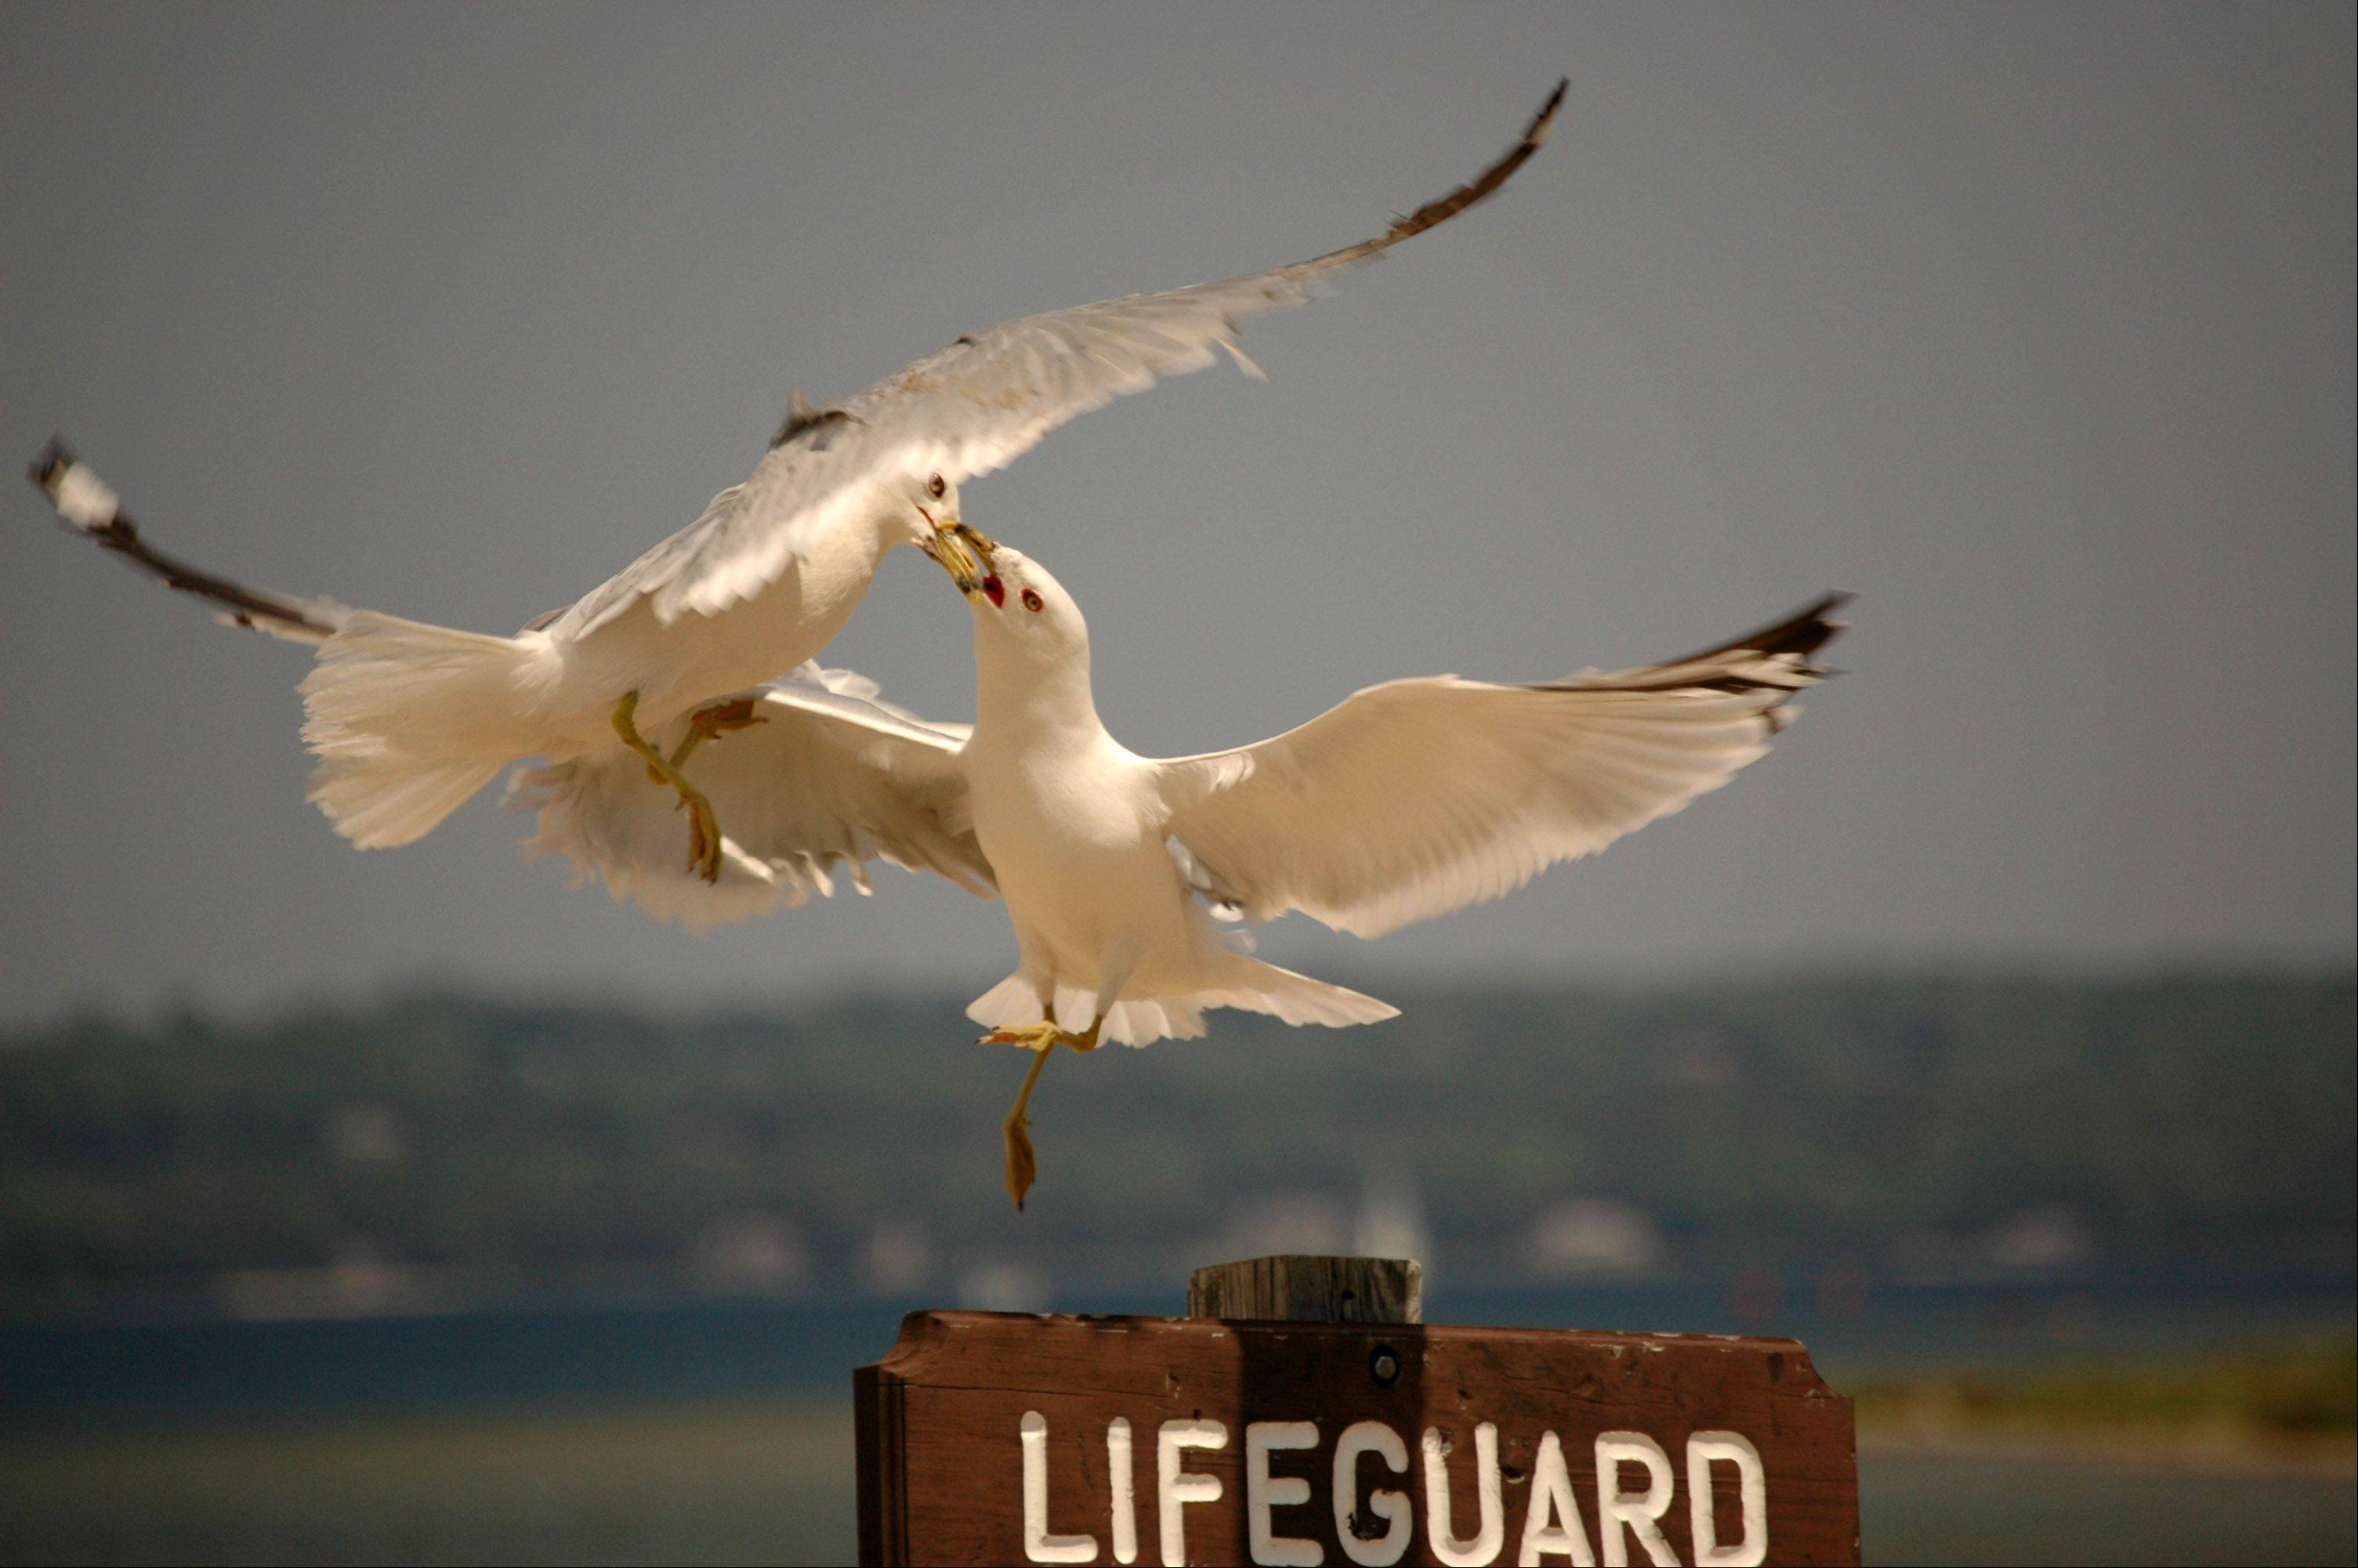 While on a trip to Lake Geneva, Wisconsin, we saw these two seagulls fighting for a landing spot on top of this lifeguard sign along the beach.